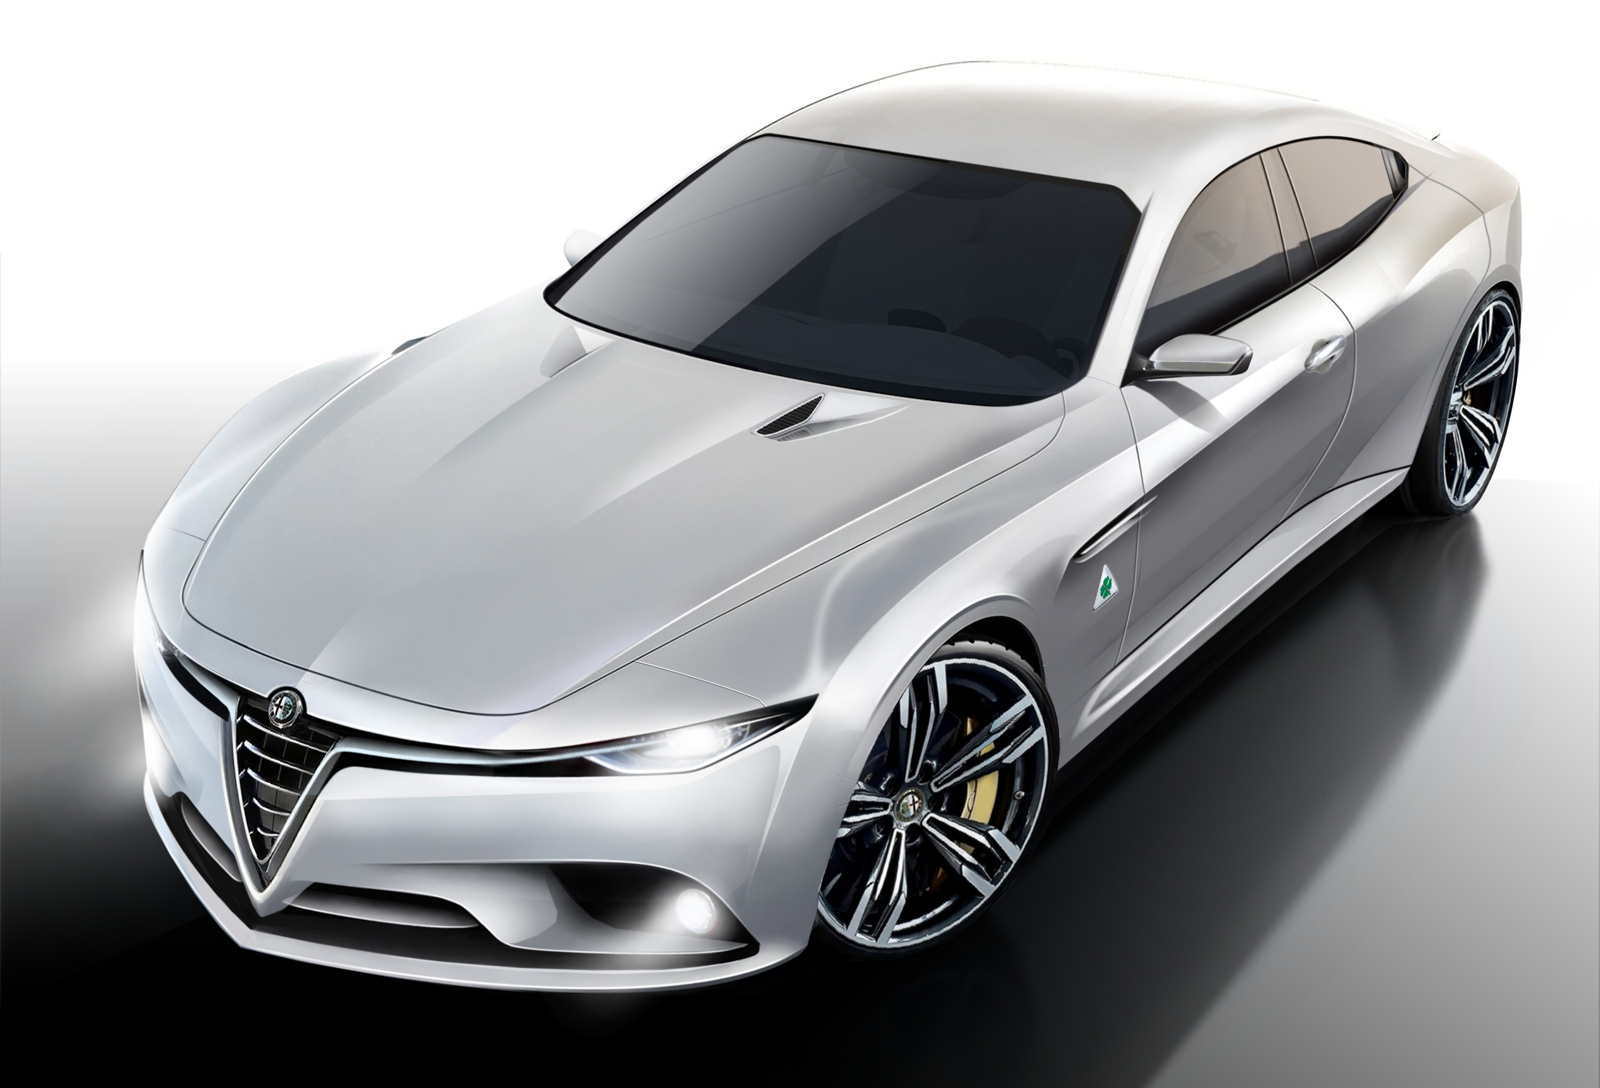 All the world waiting for a new Alfa Romeo 2015 sedan in June! #11